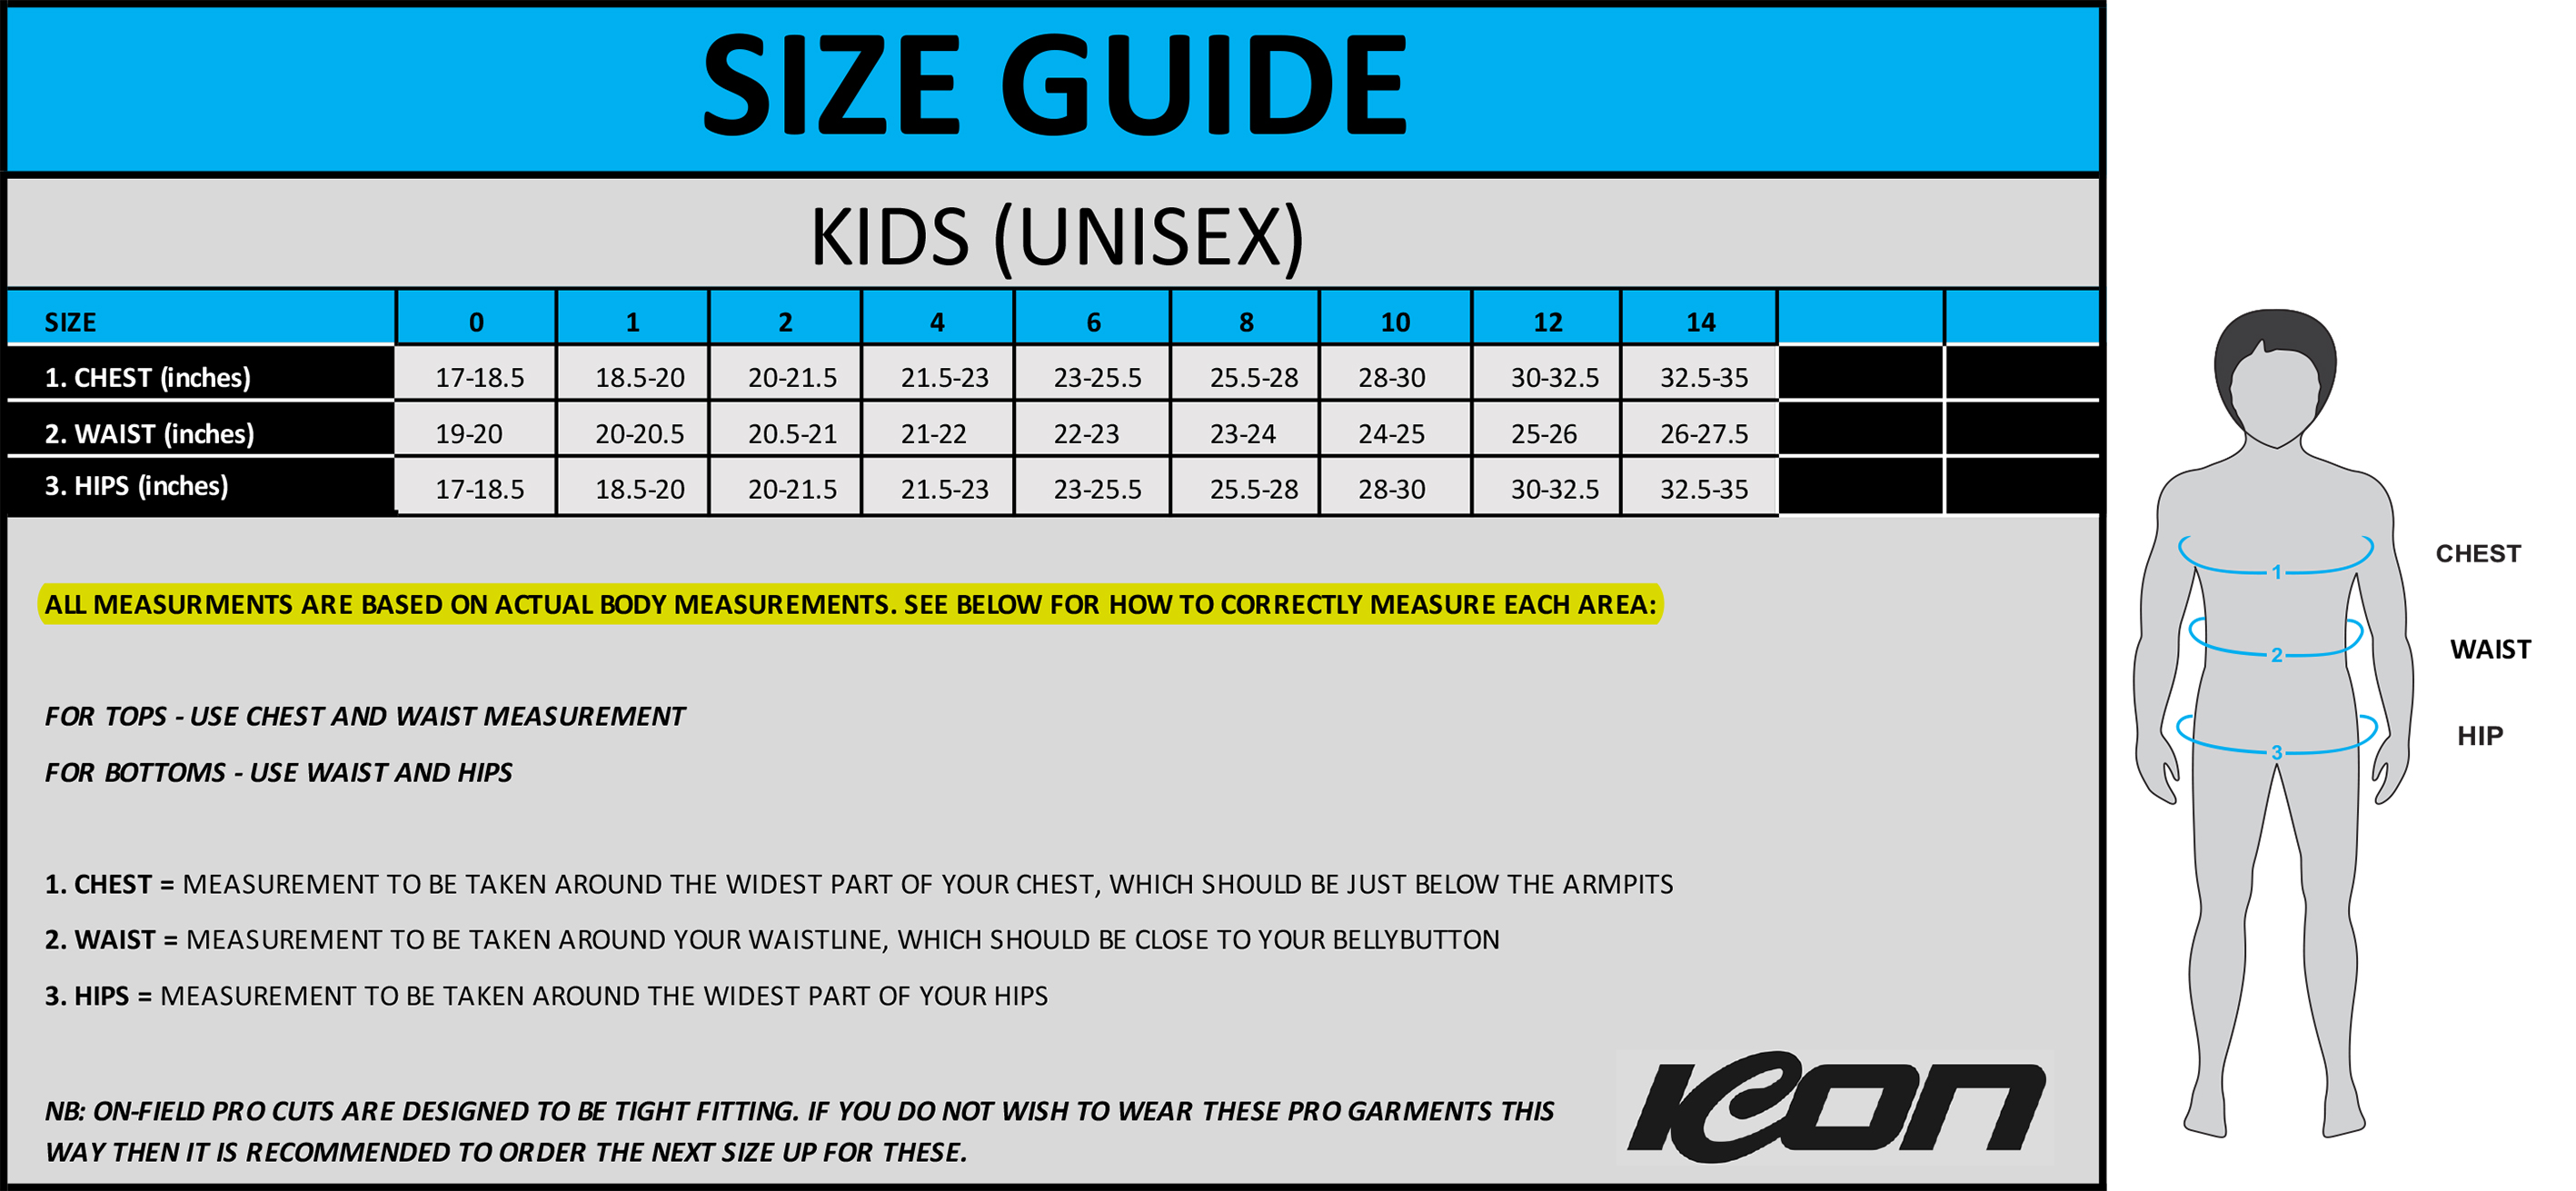 KIDS SIZE GUIDE ICON UK.jpg